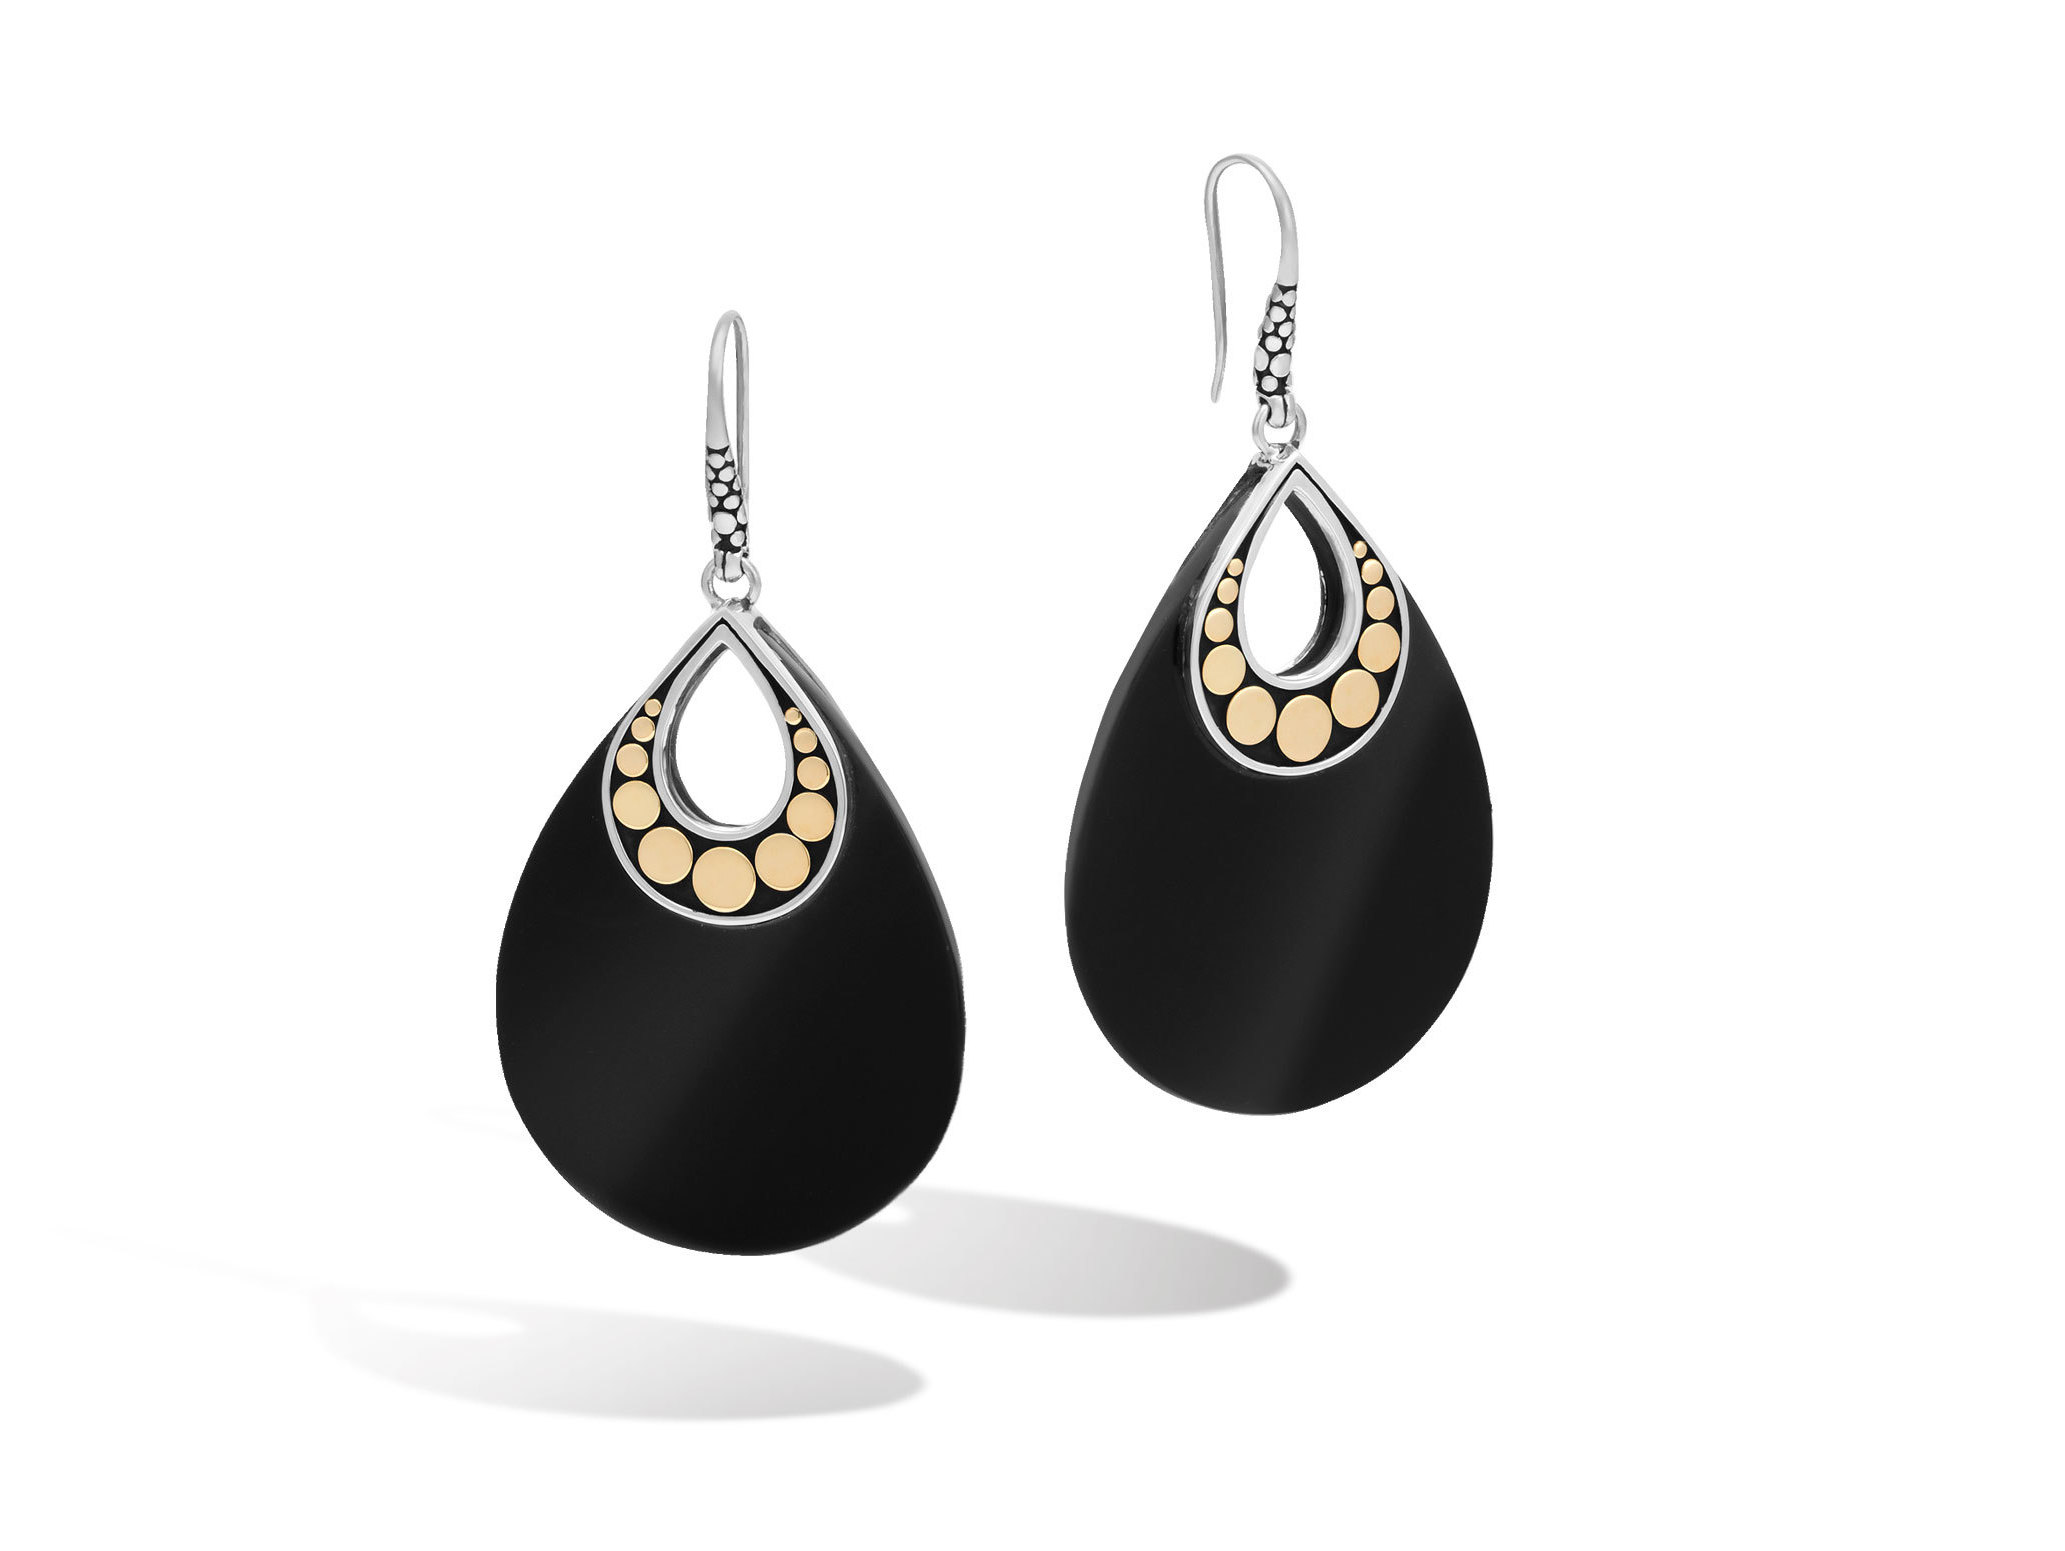 yellow earrings onyx drop gold lever black back jewelry amazon natural gemstone dp dangling com